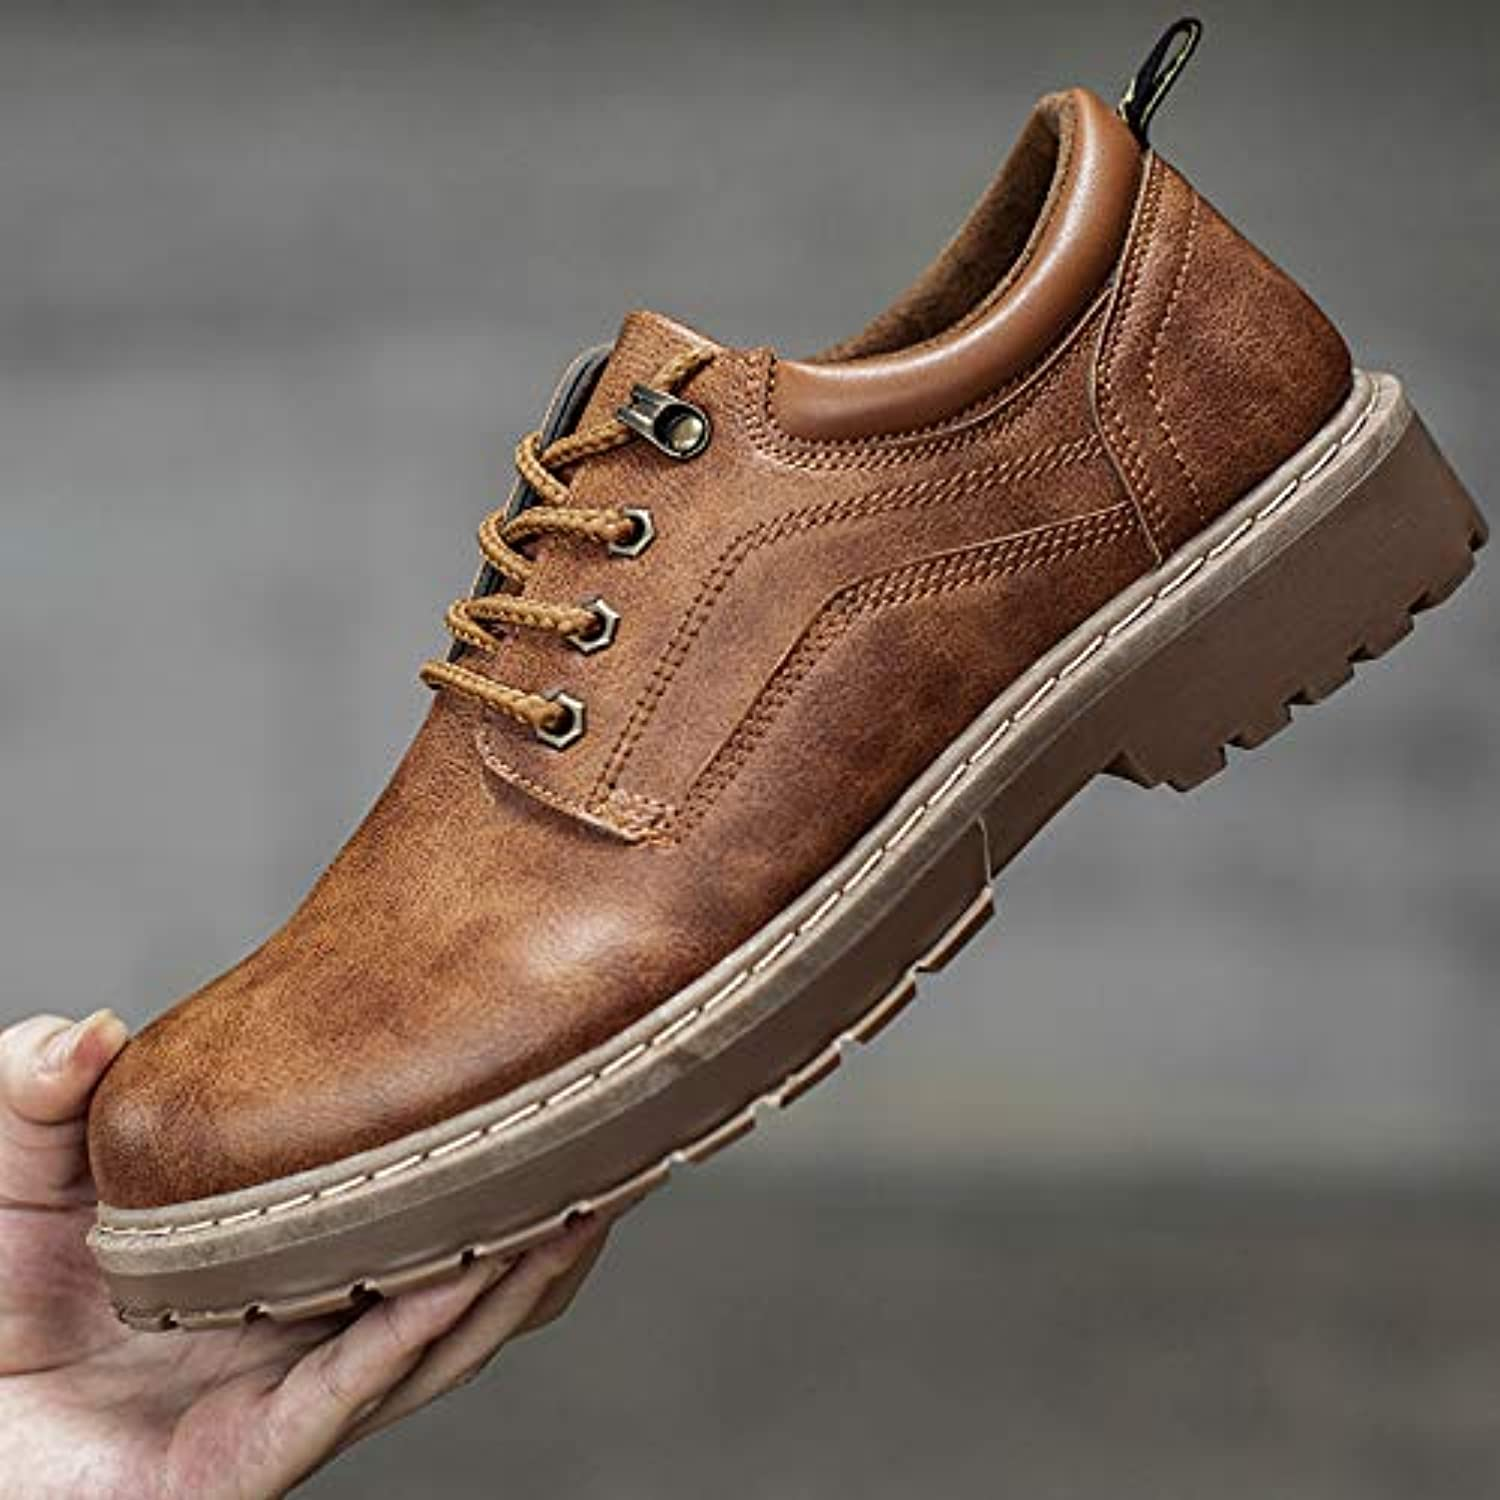 LOVDRAM Boots Men's Tough Guys Help Increase Martin Boots Tooling shoes Men'S shoes Casual shoes Wild